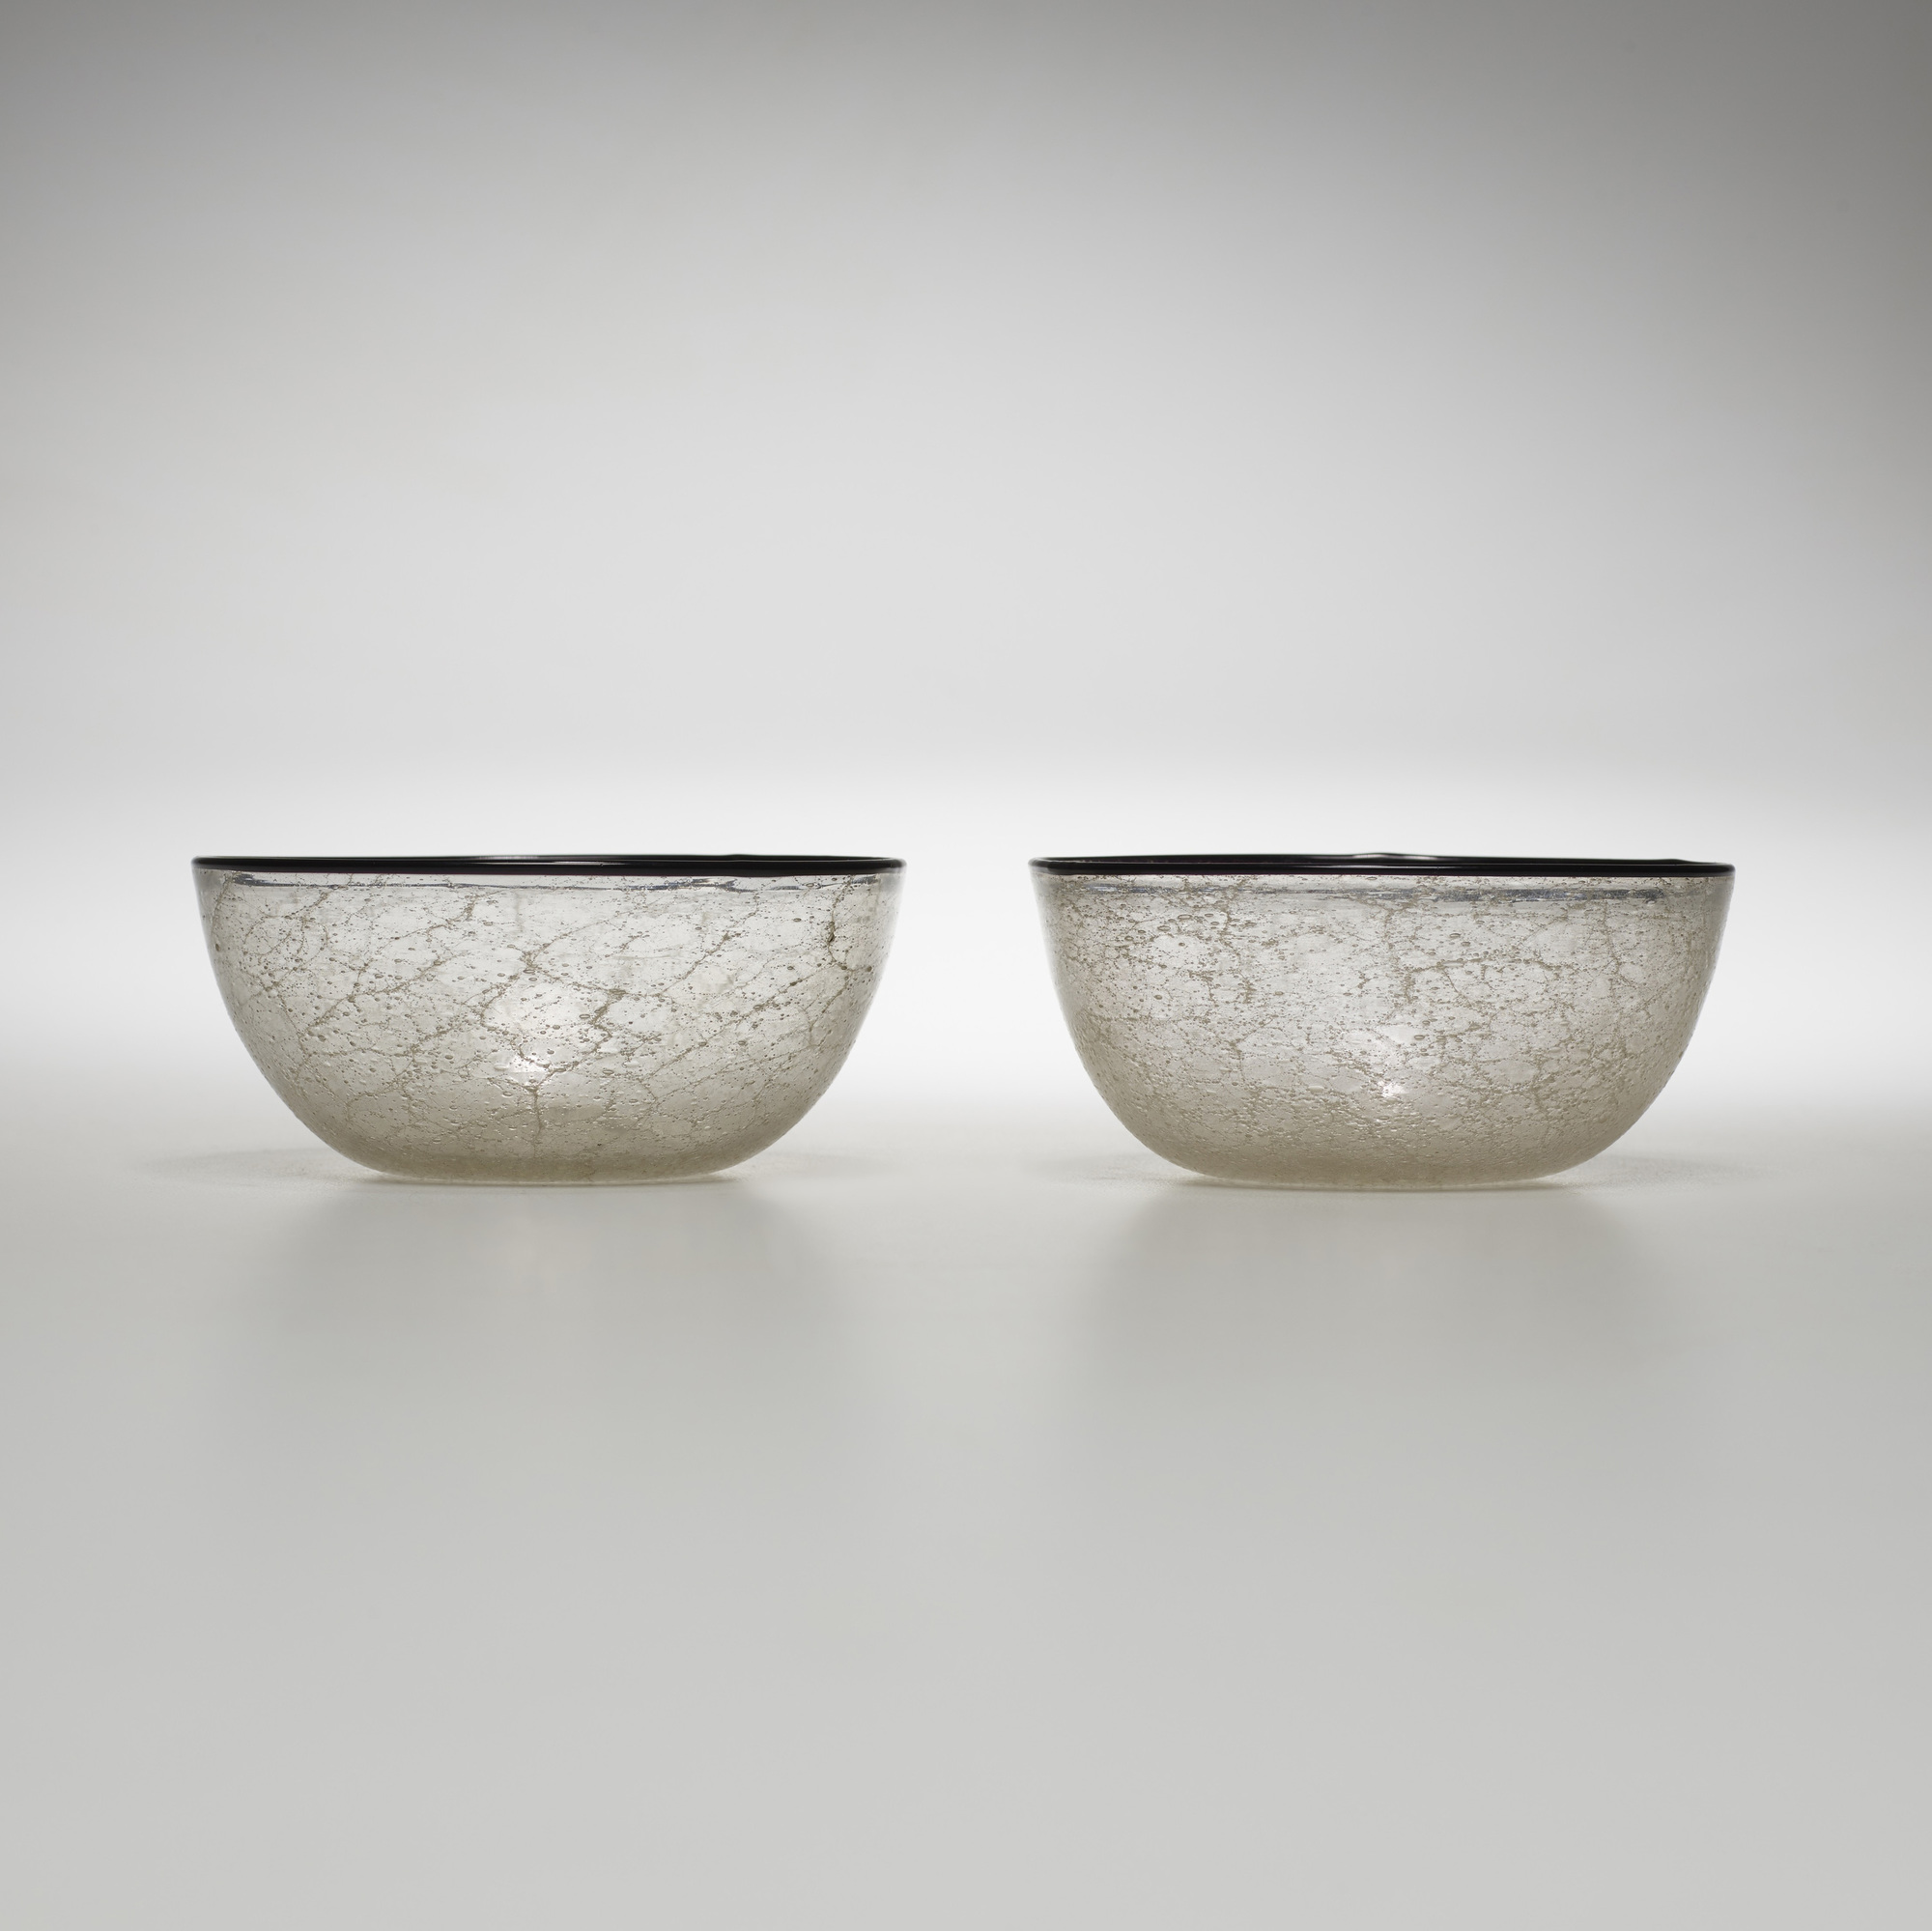 104: Ercole Barovier / Primavera bowls, set of four (2 of 2)